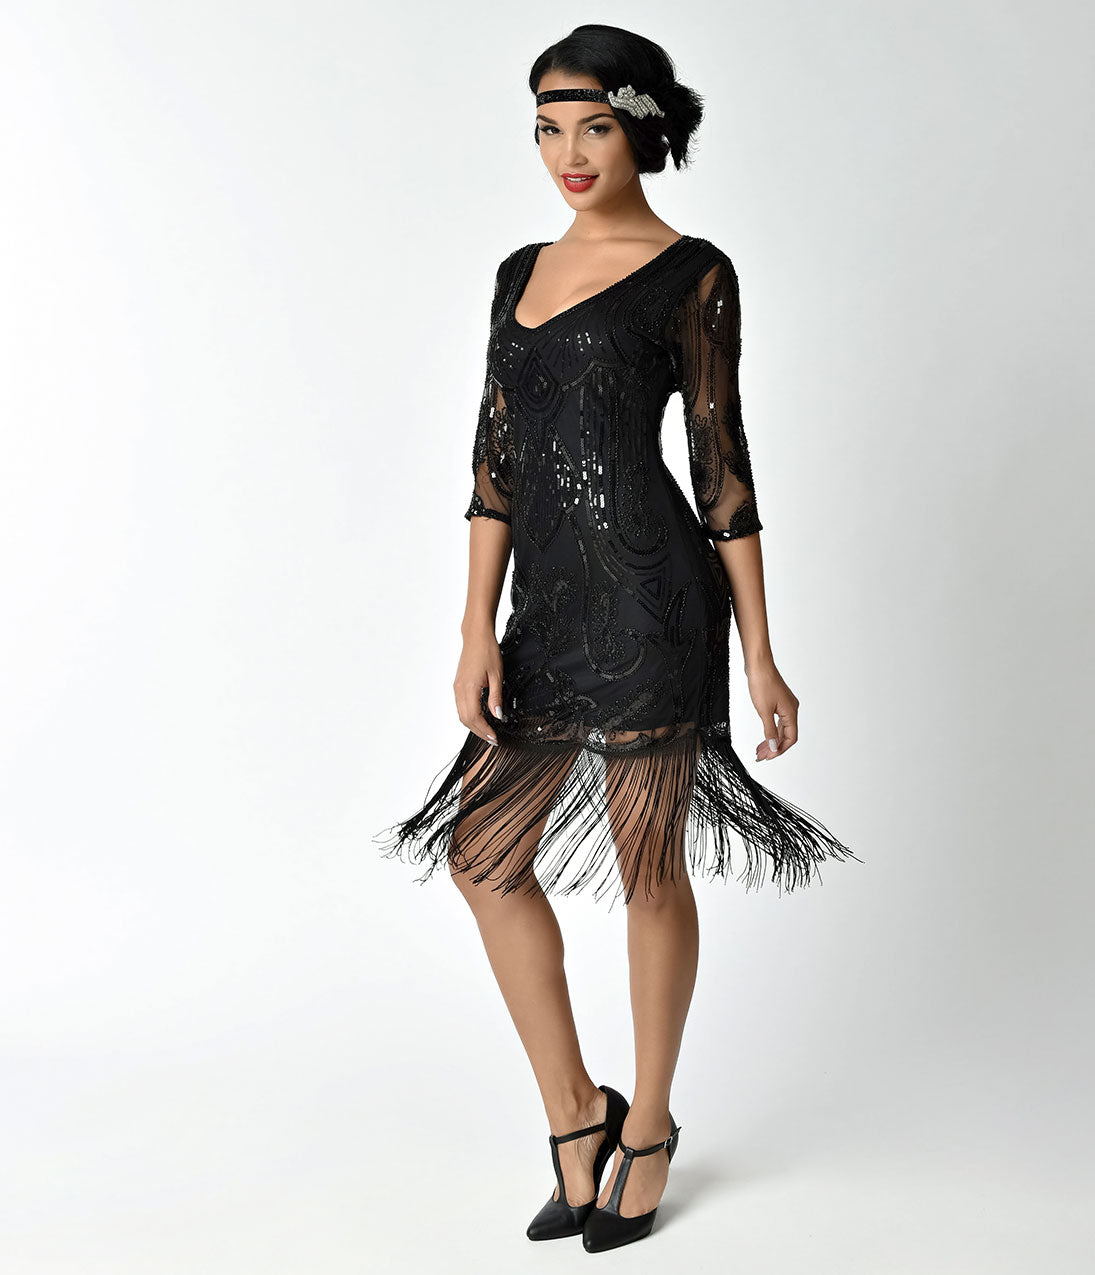 20s Dresses | 1920s Dresses for Sale Unique Vintage Black Beaded  Sequin Margaux Sleeved Fringe Cocktail Dress $110.00 AT vintagedancer.com